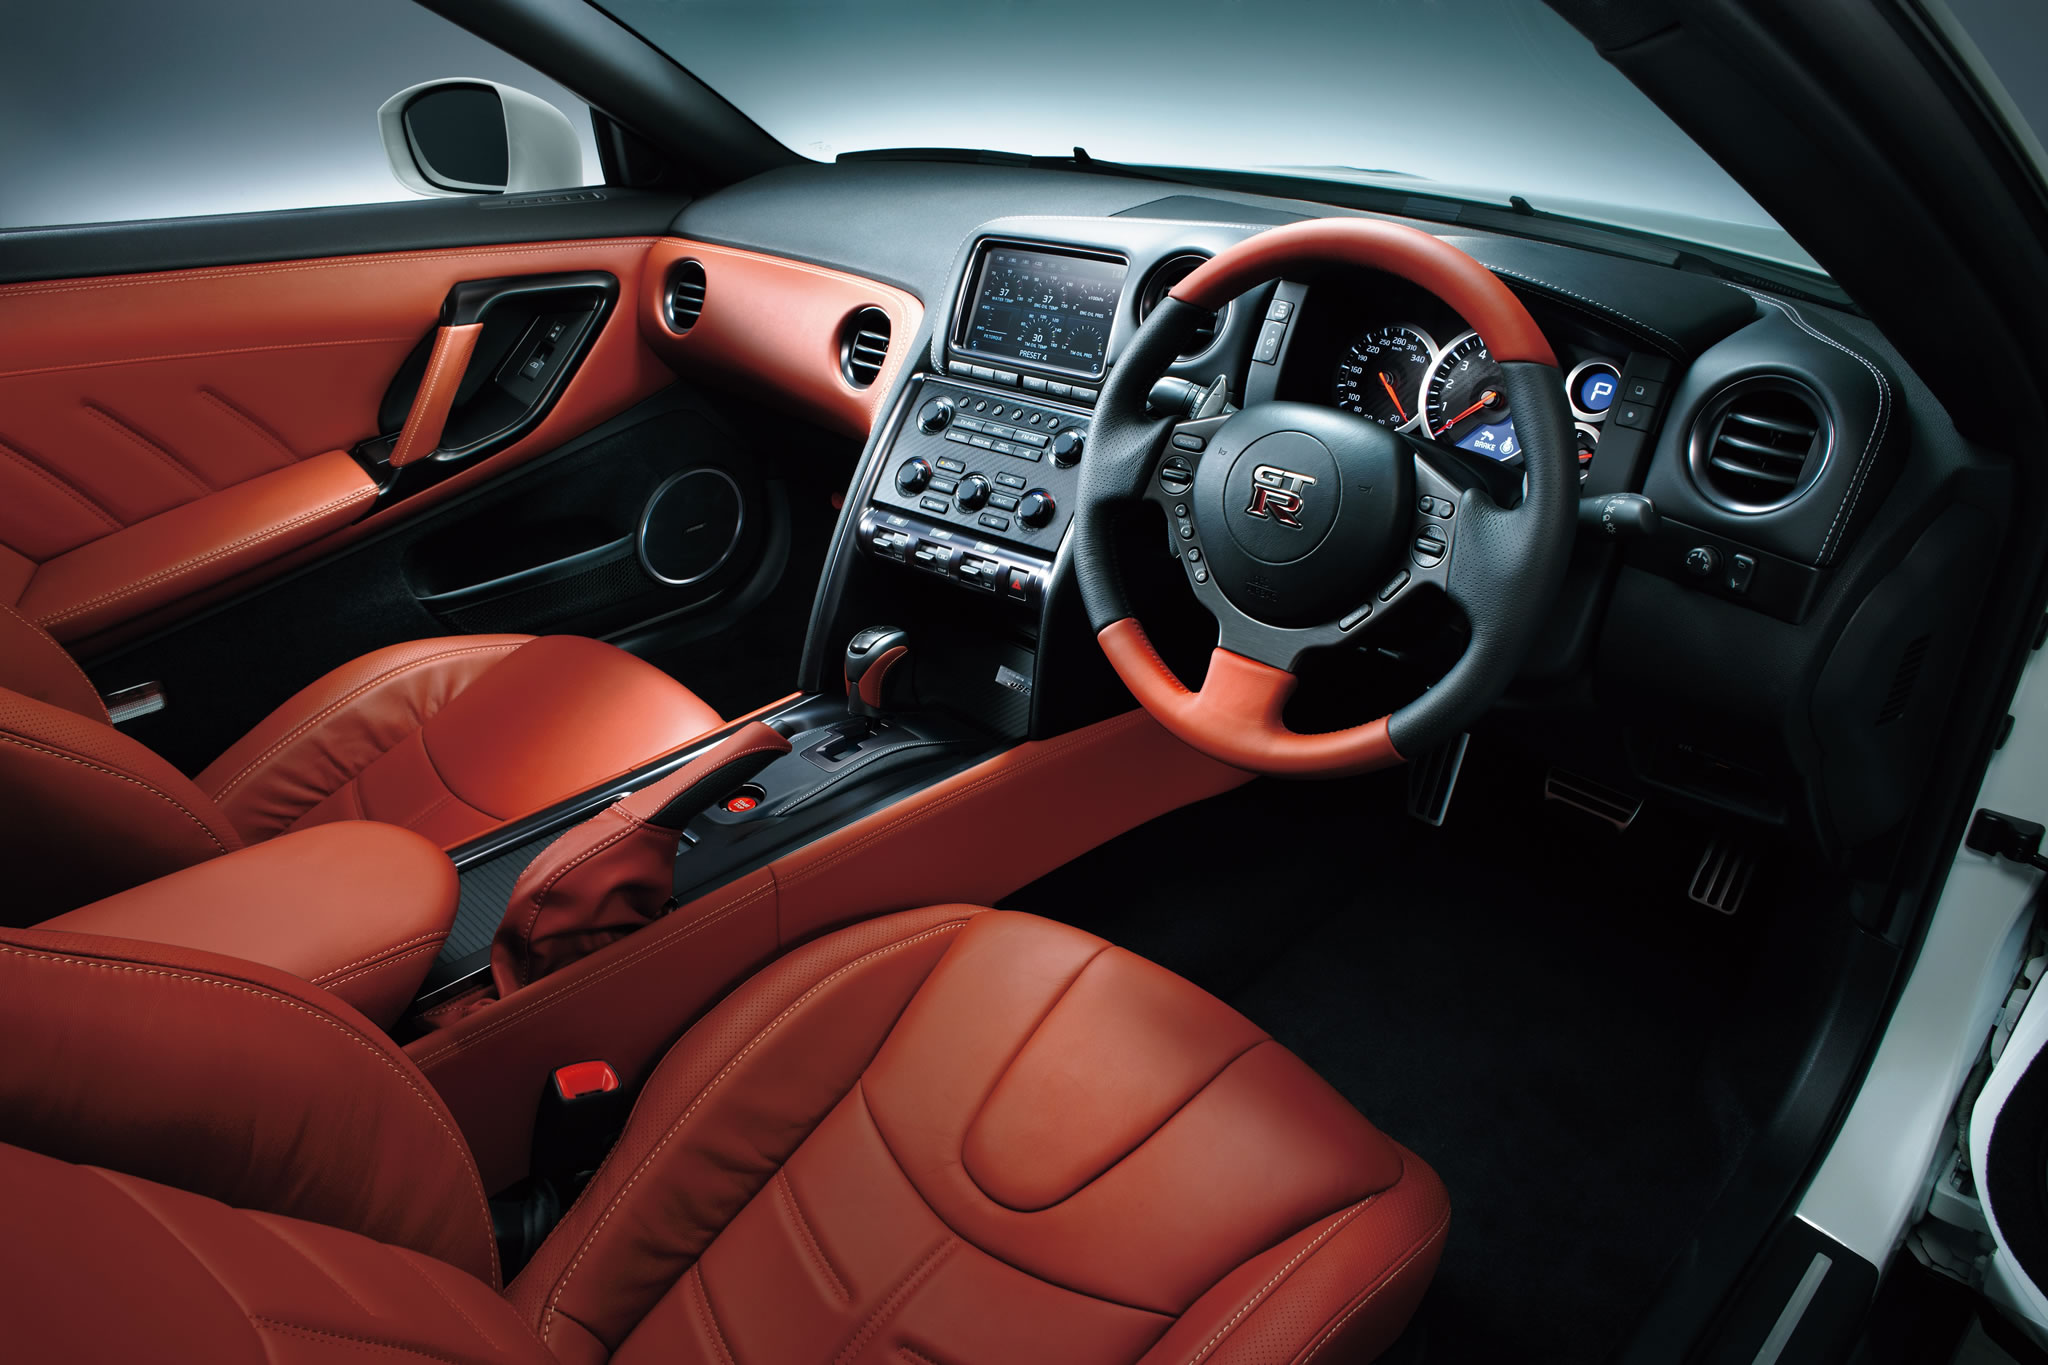 2015 Nissan Gt R Interior Photo Dashboard Steering